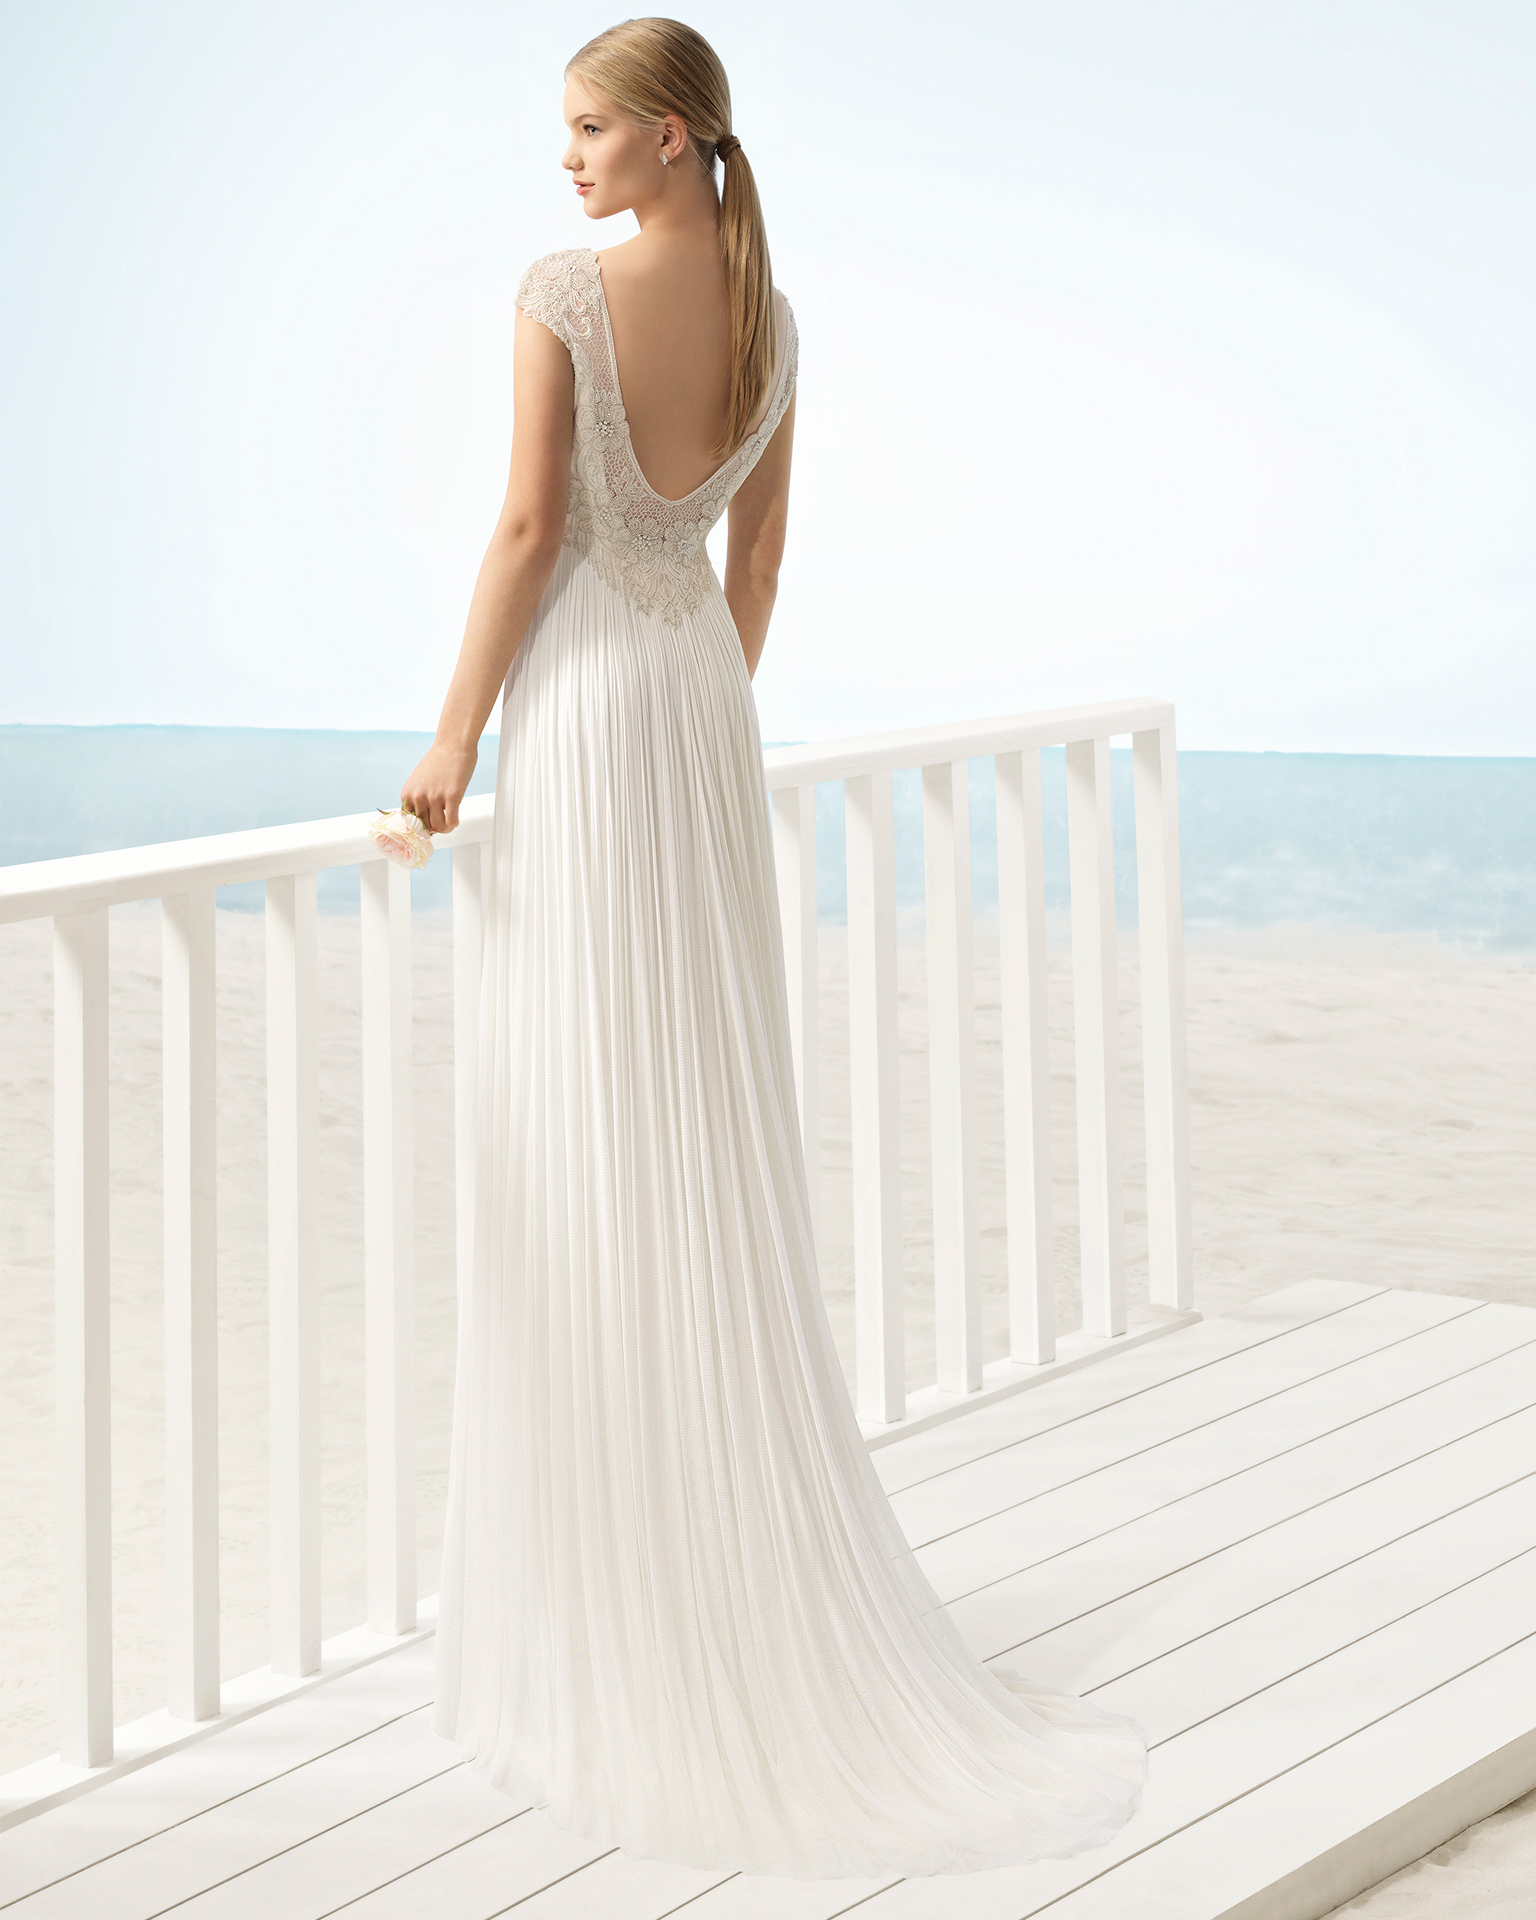 Boho-style silk mousseline wedding dress with bateau neckline and jeweled back.